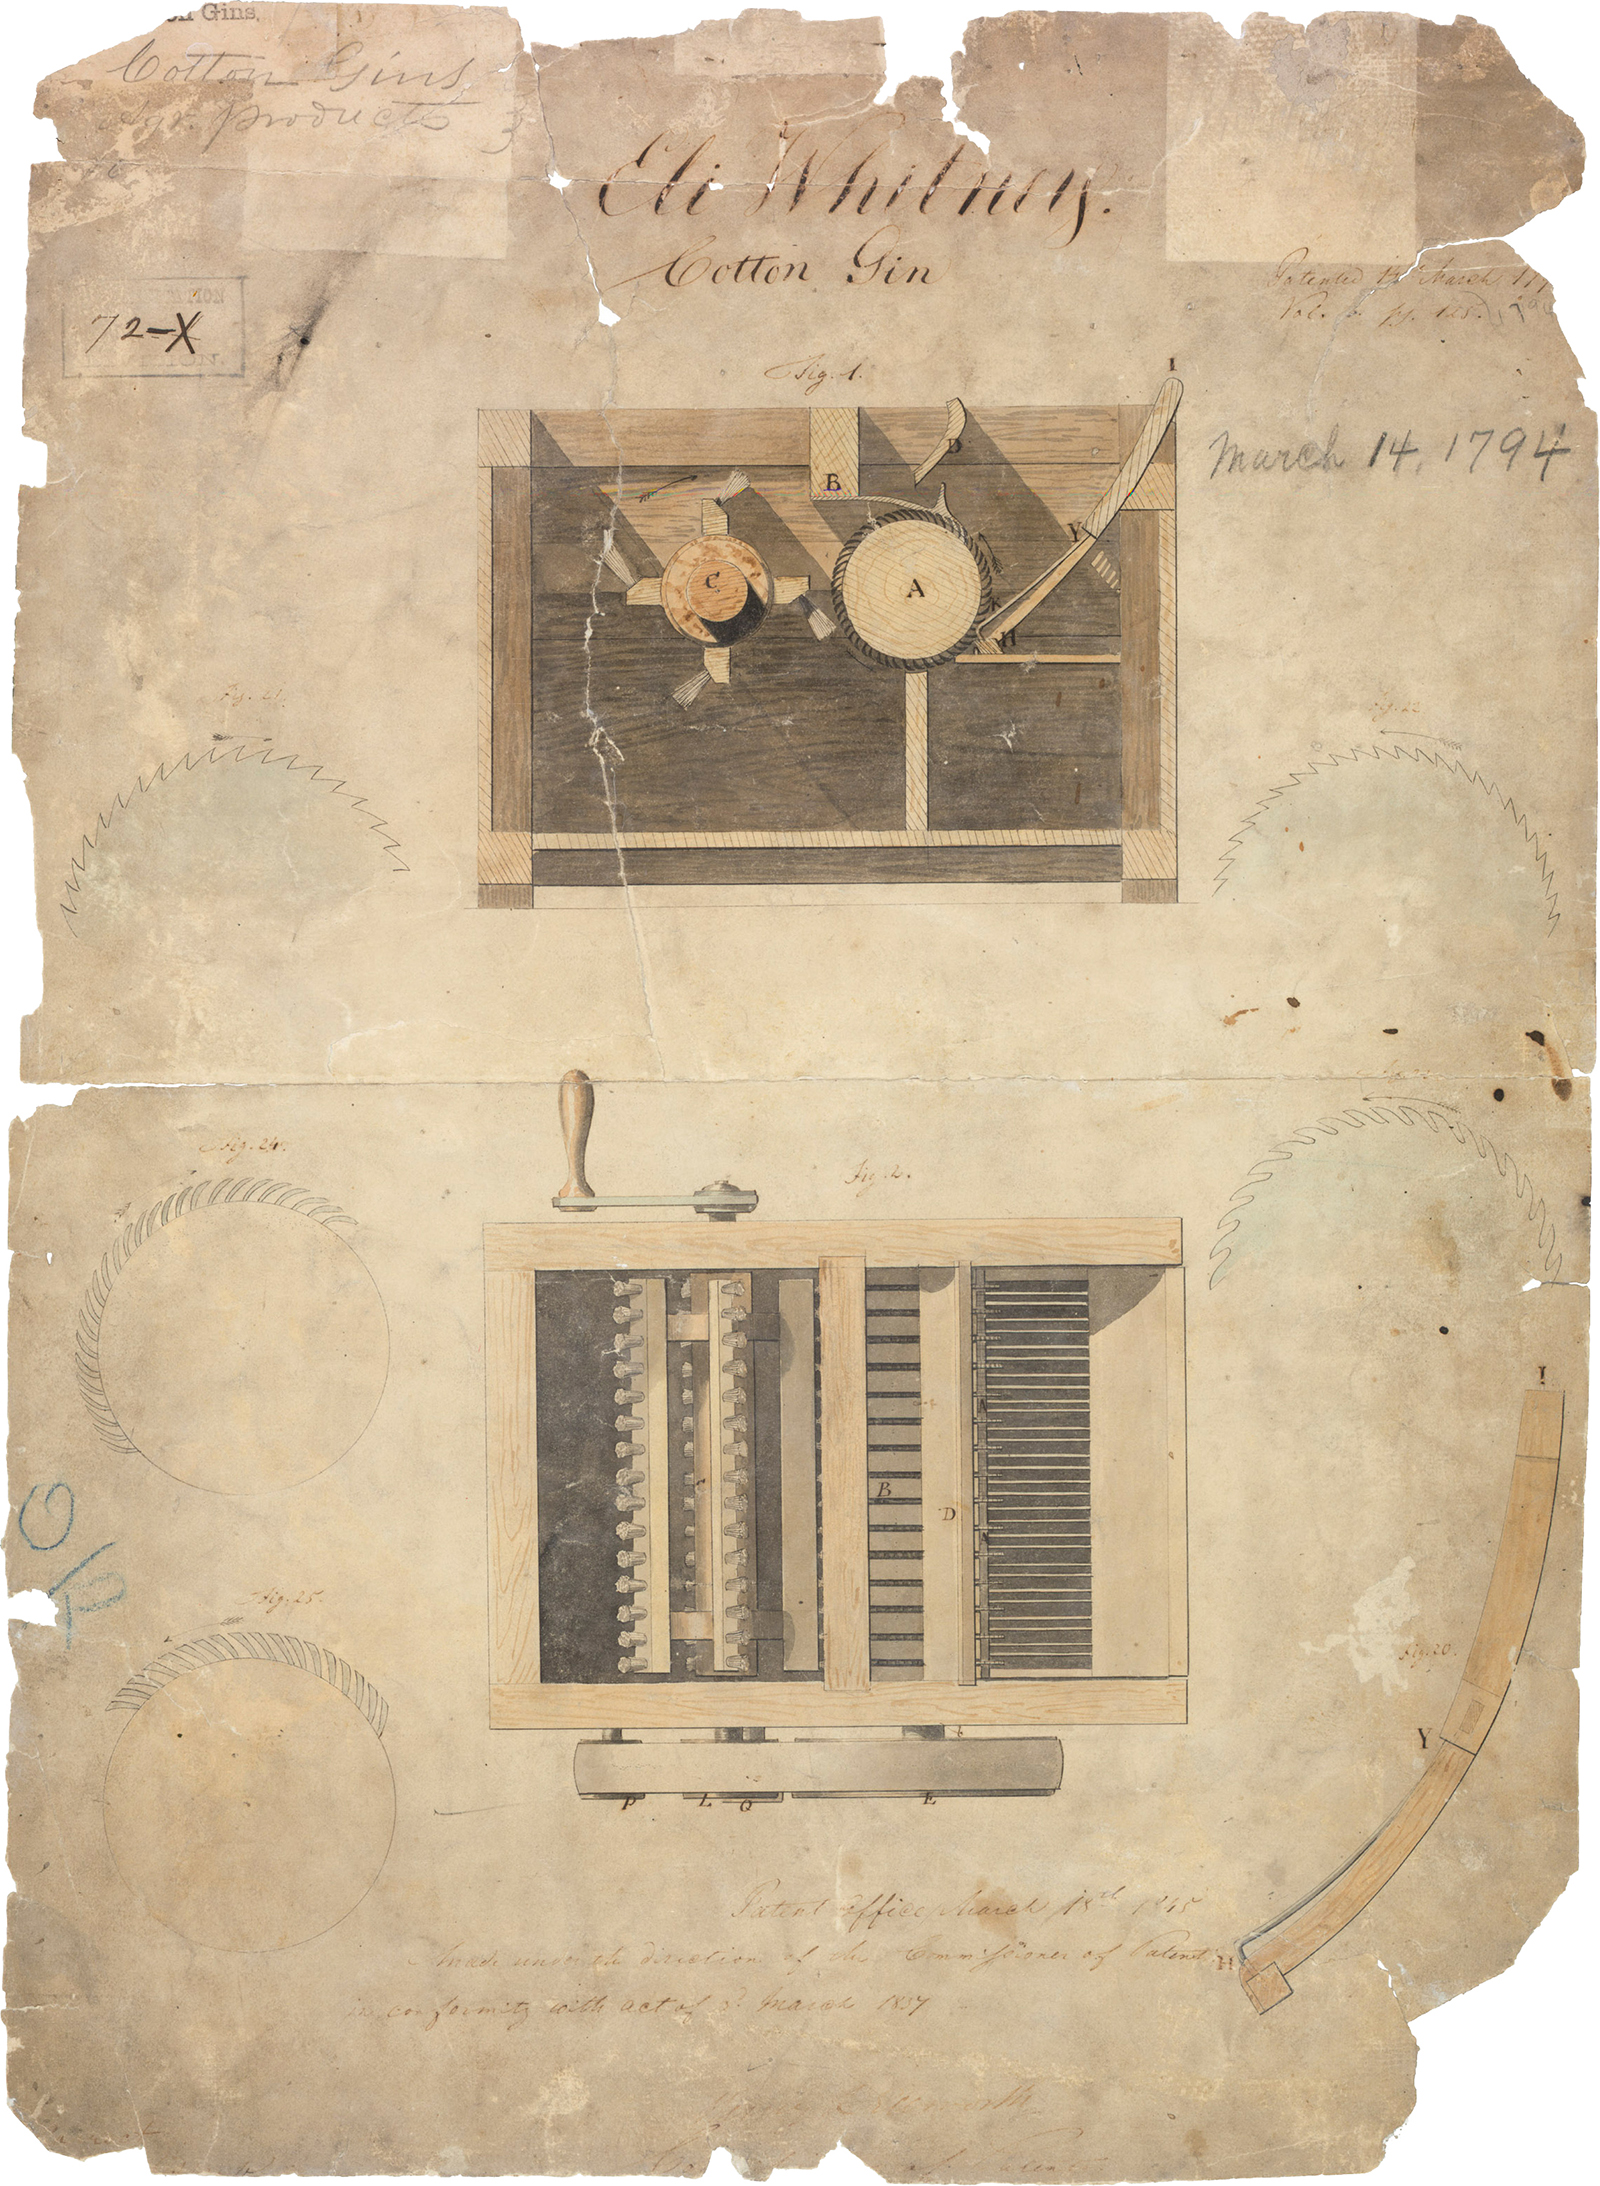 Cotton Gin and Eli Whitney